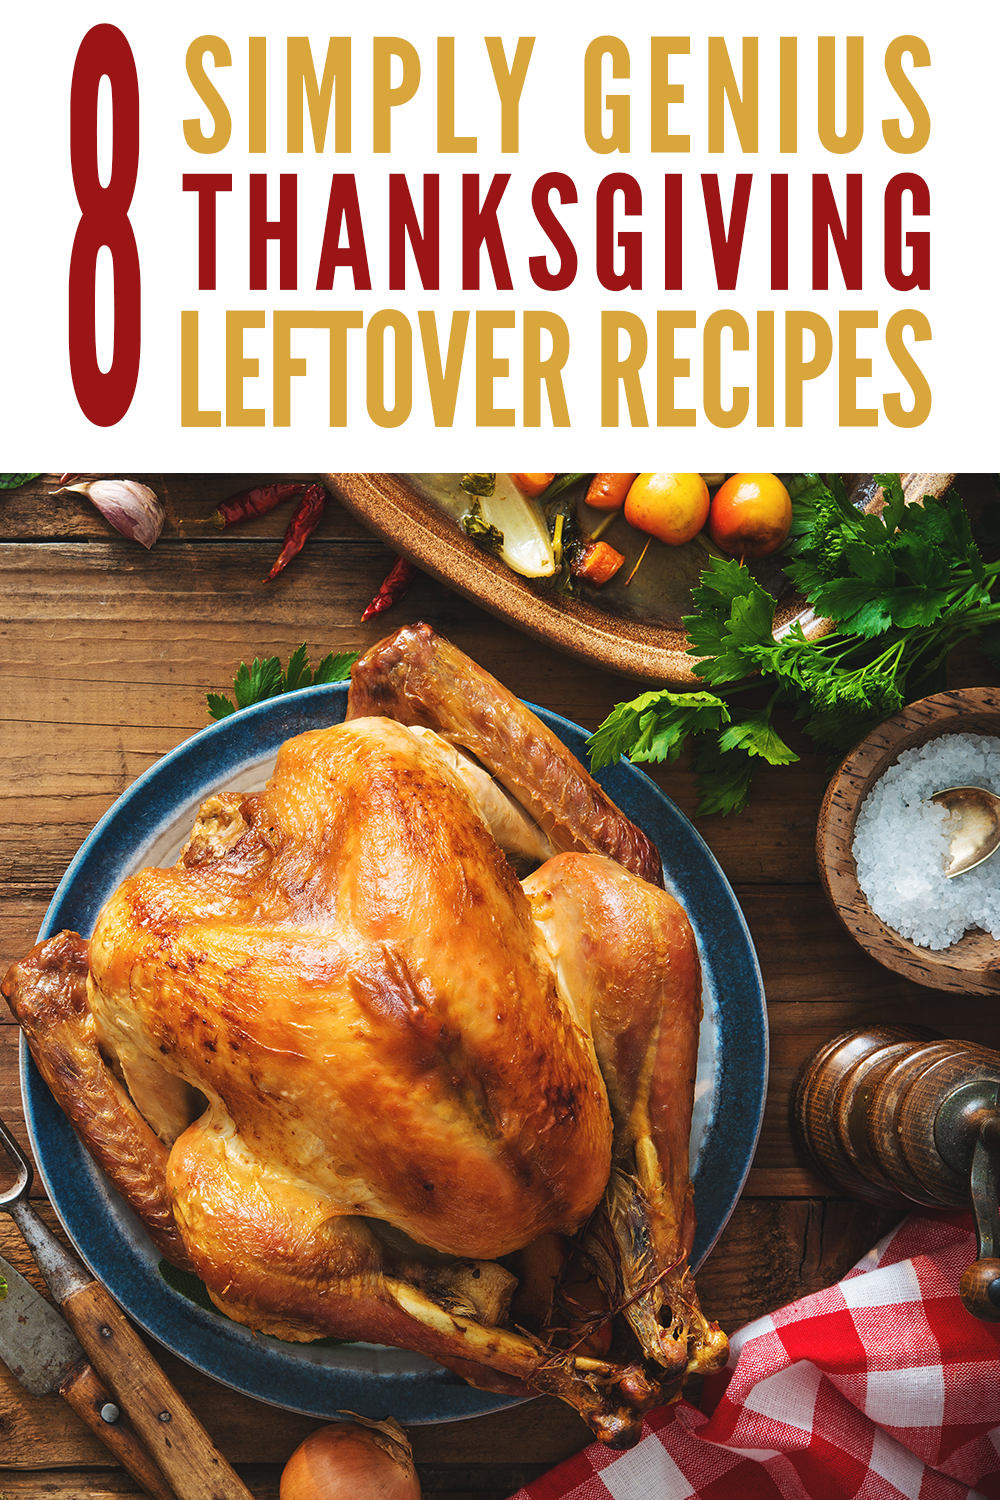 Once turkey day is over, it can be hard to use up all of